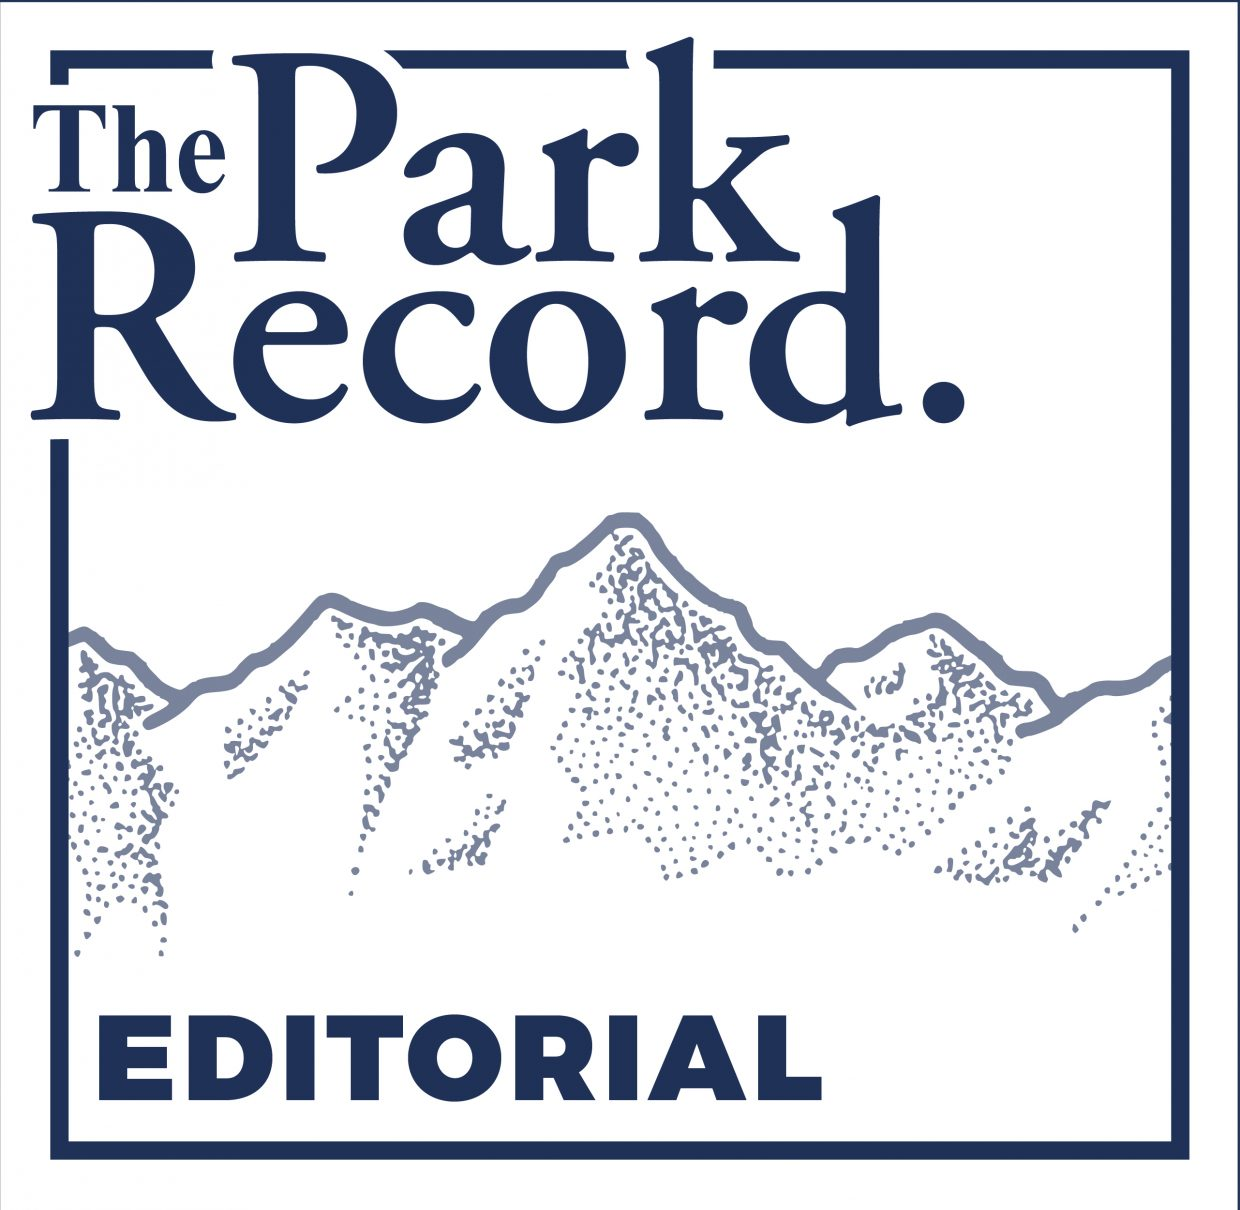 Record editorial: Developer of PCMR parking lots takes on a tall task